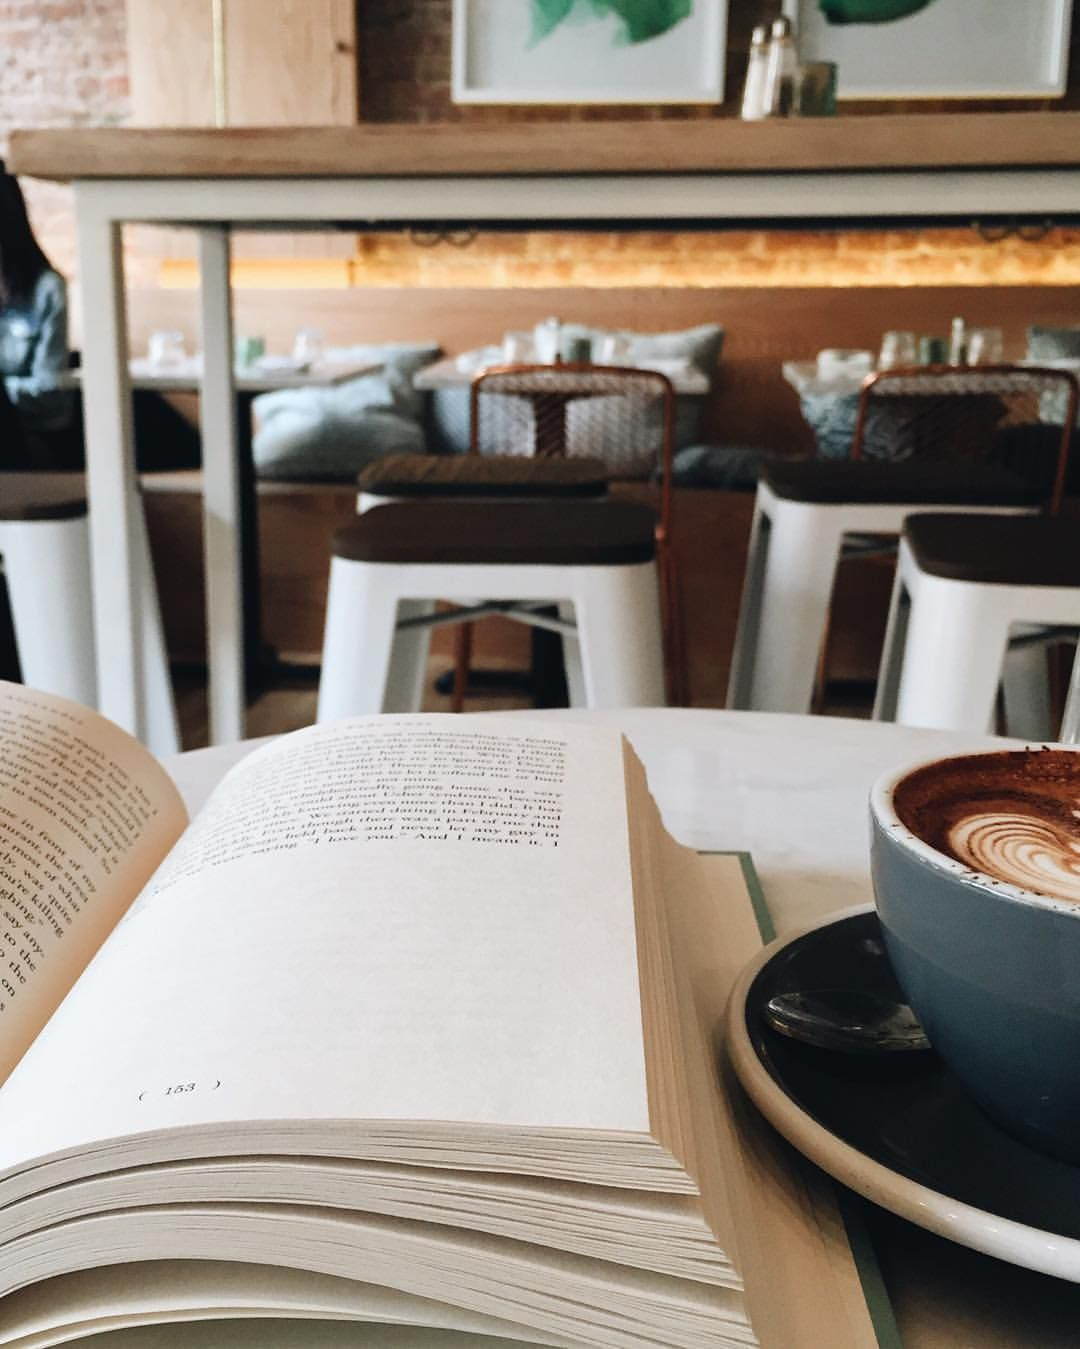 Pinterest chestnutrd Coffee and books, Book aesthetic